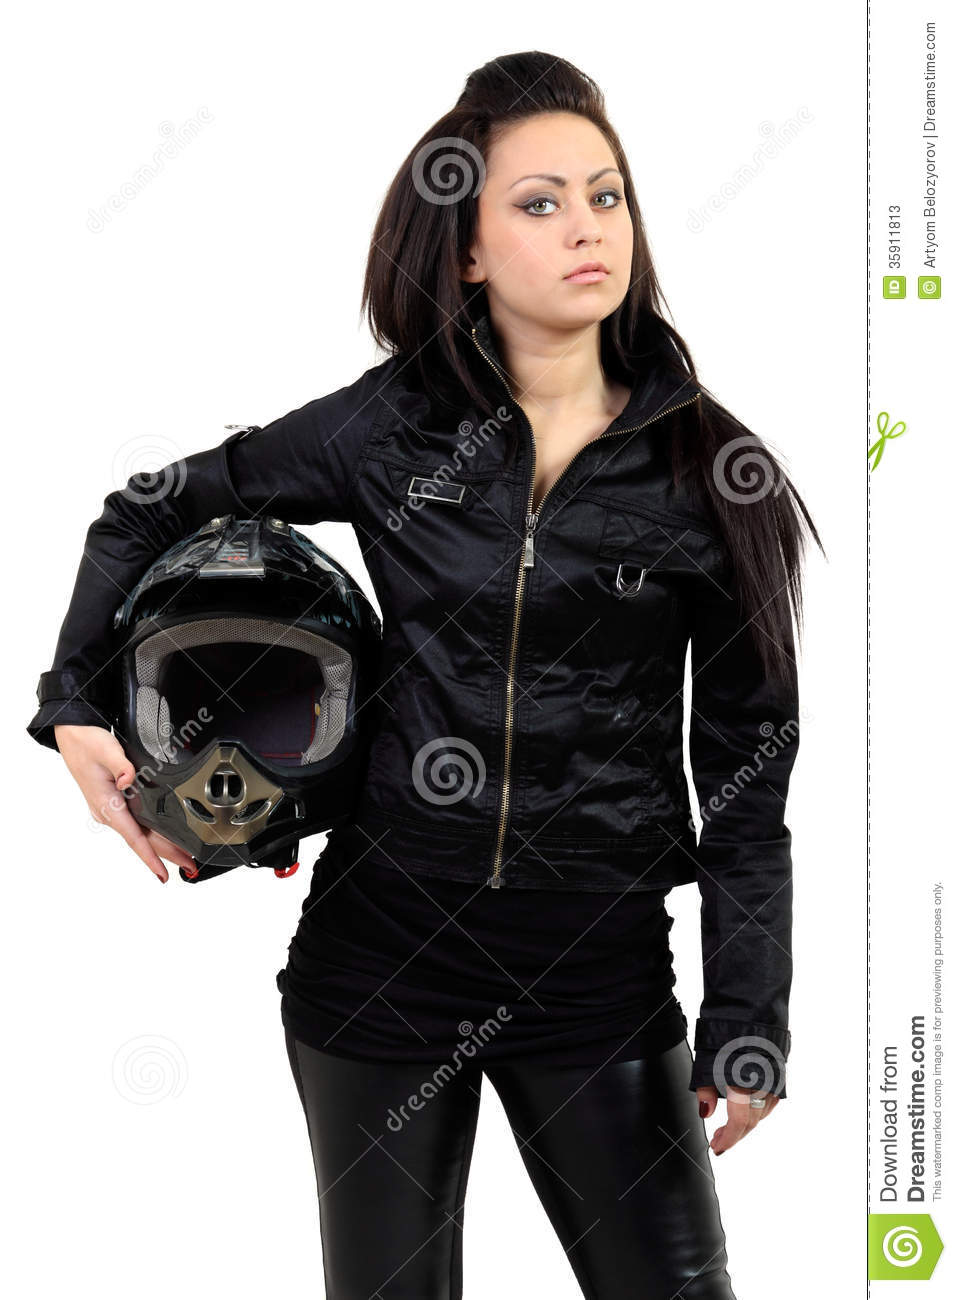 young-girl-leather-jacket-holds-motorcycle-helmet-hand-35911813.jpg